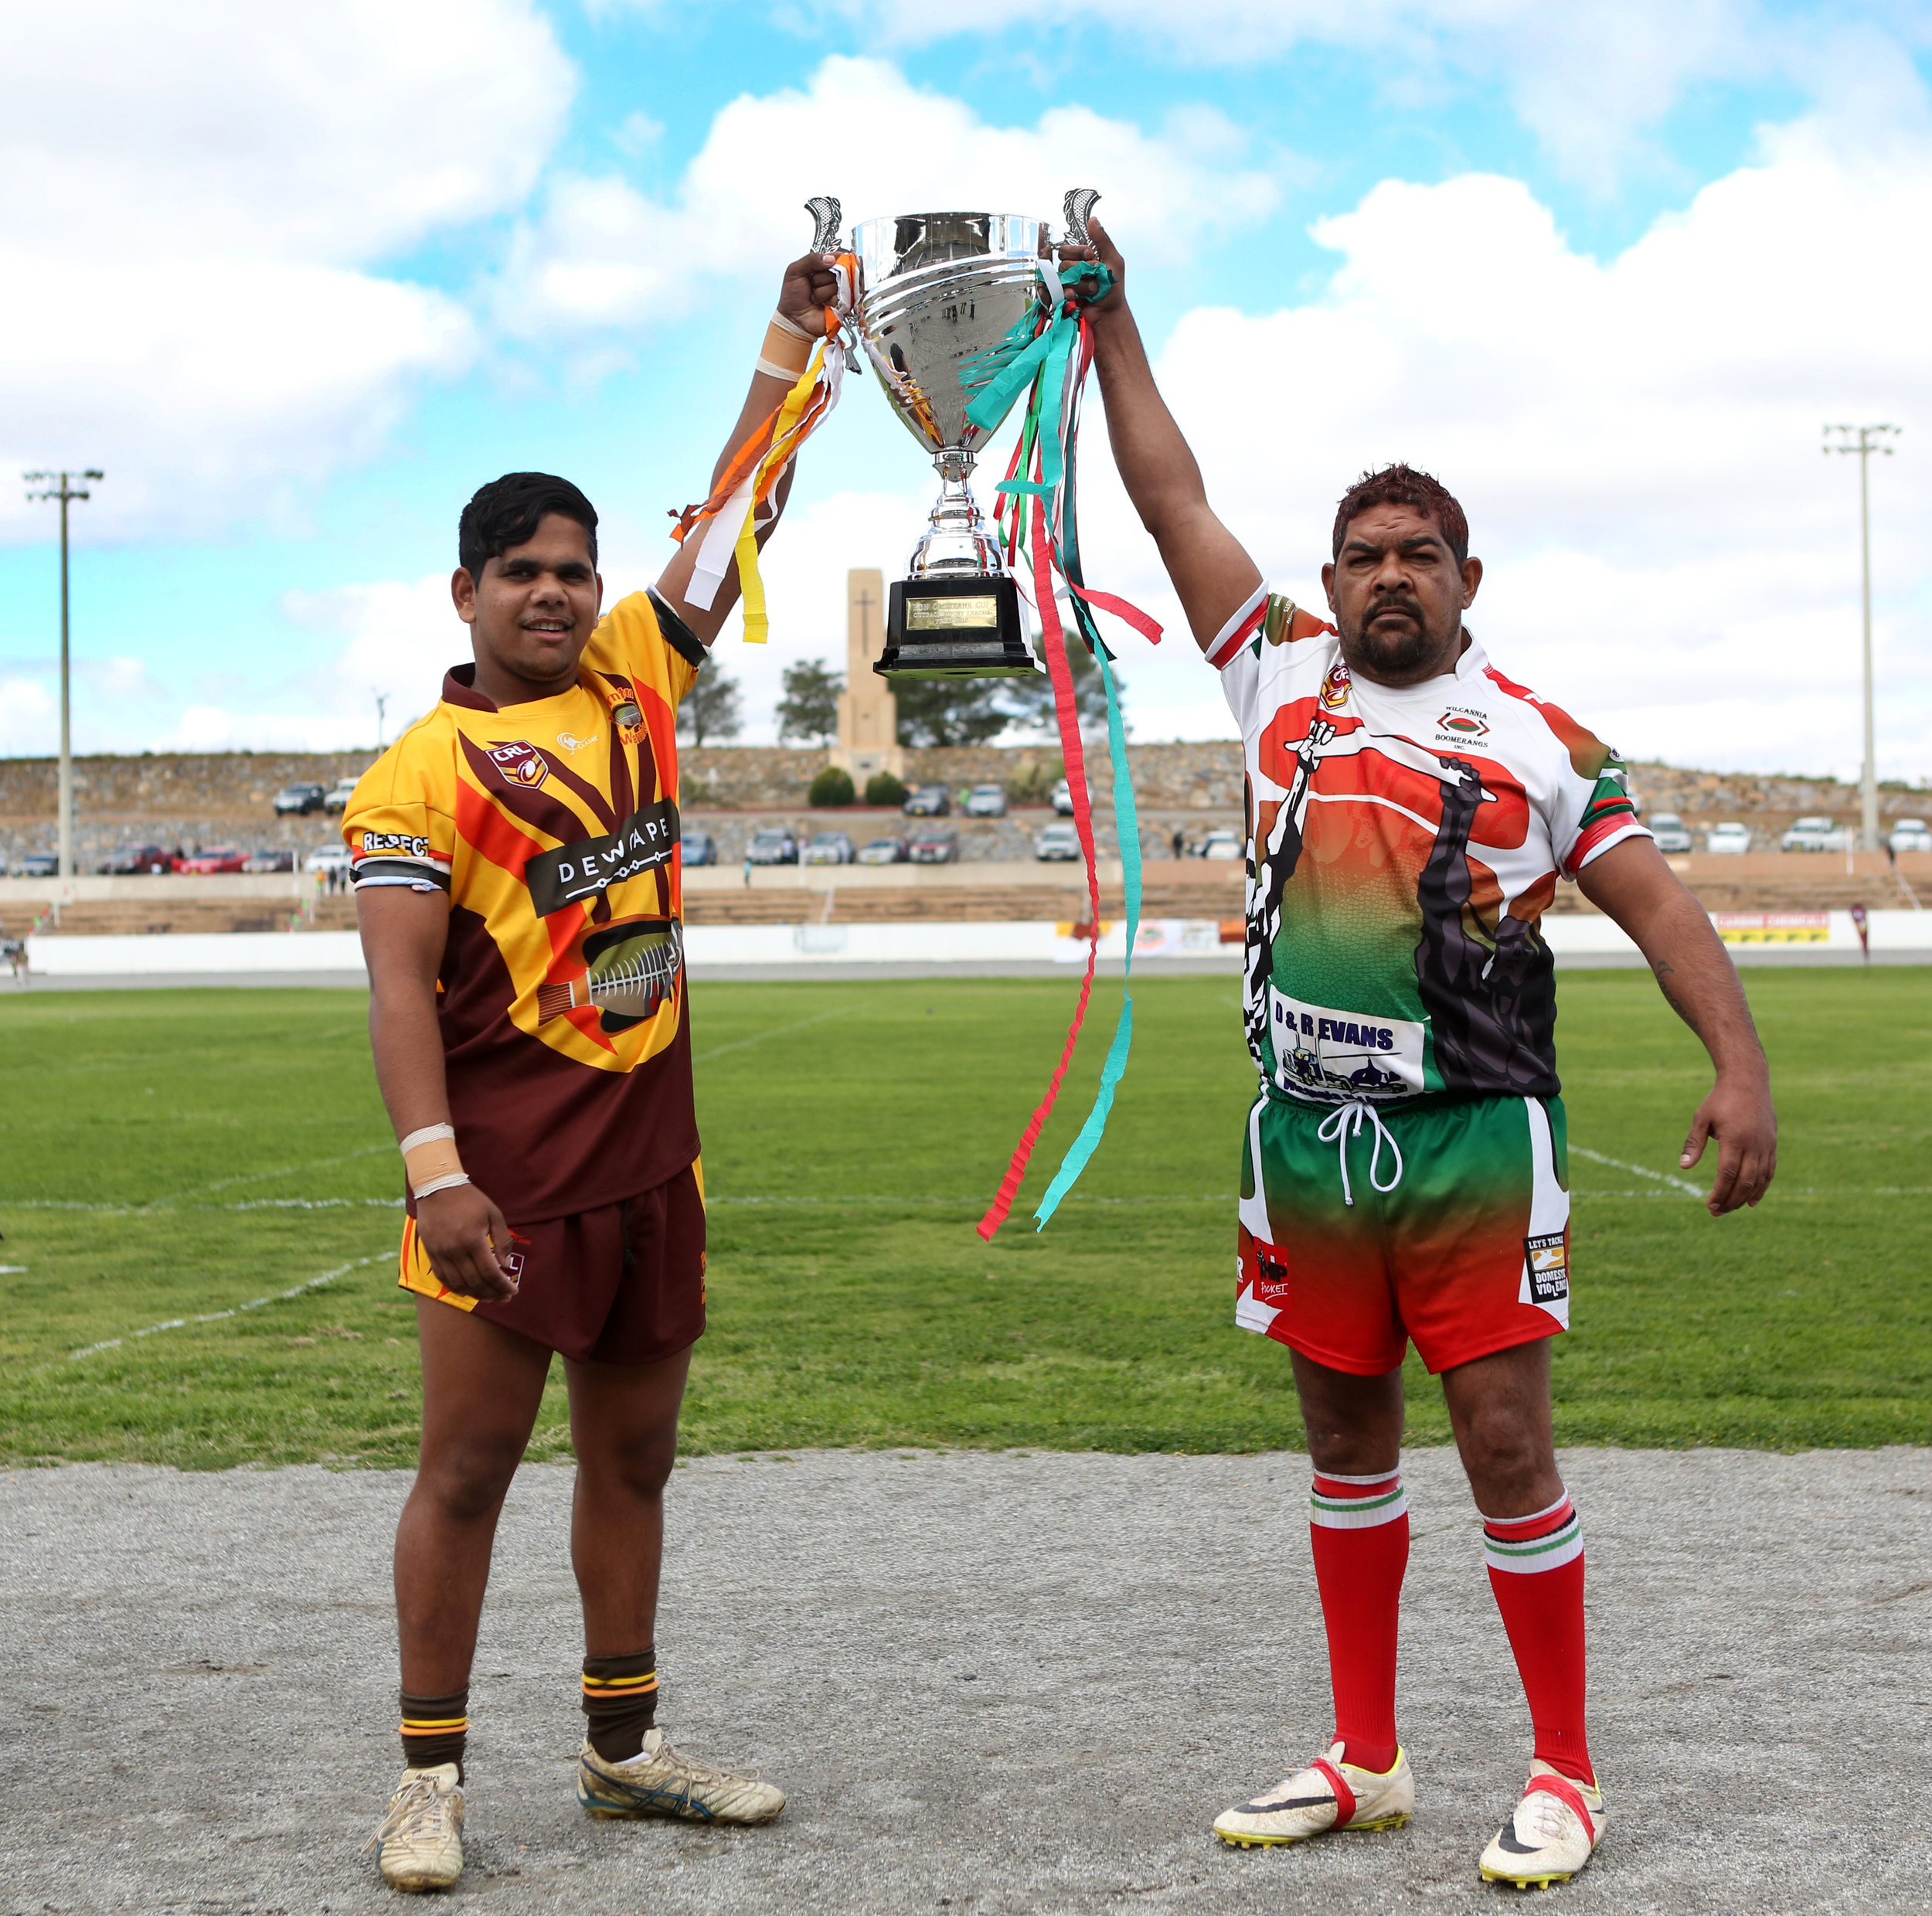 The Parntu Warriors vs. The Boomerangs in The Outback Rugby League Grand Final.